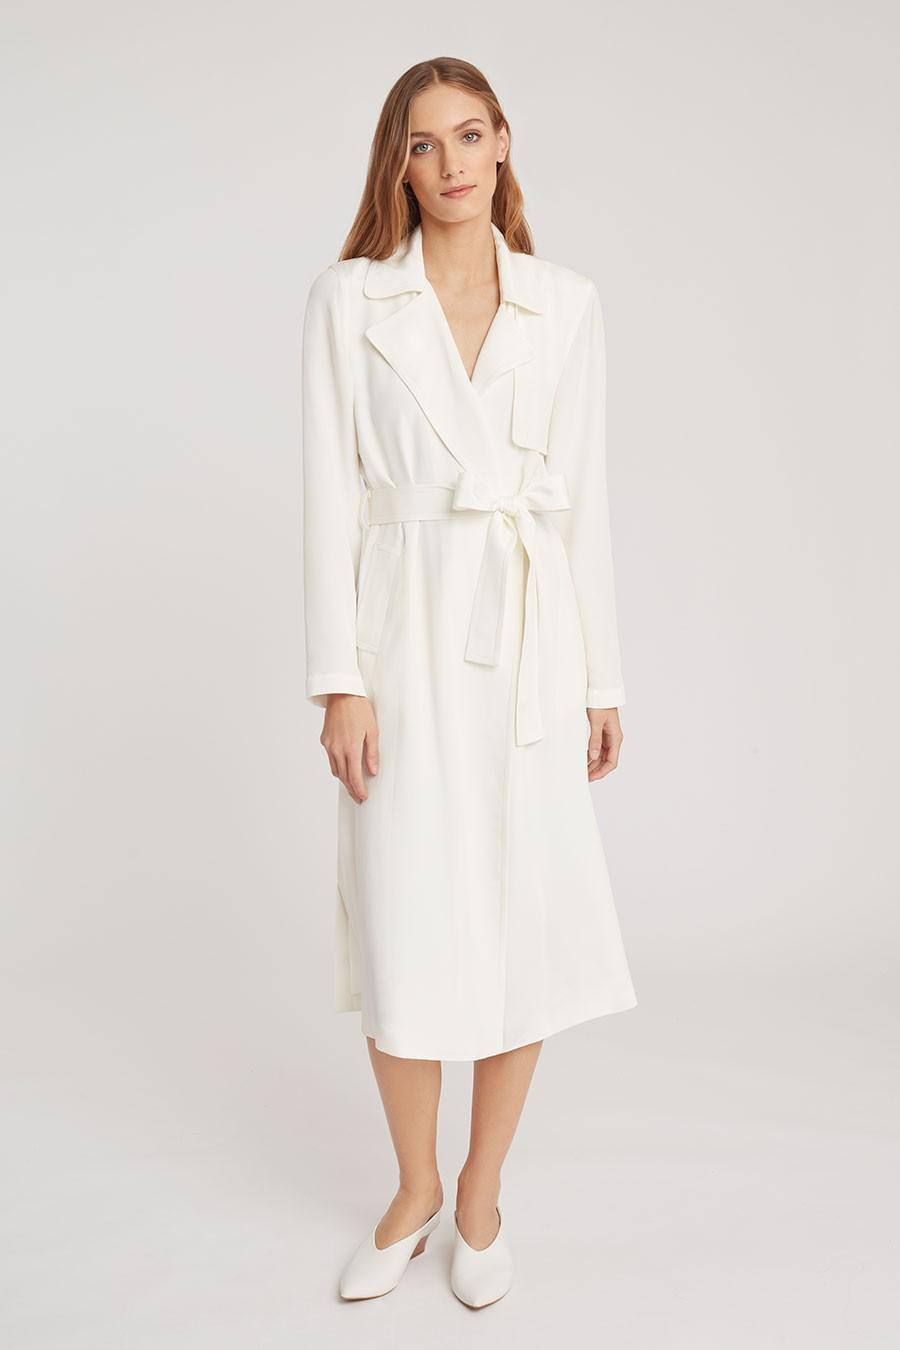 Women's Silk Classic Trench in White | Size: 2